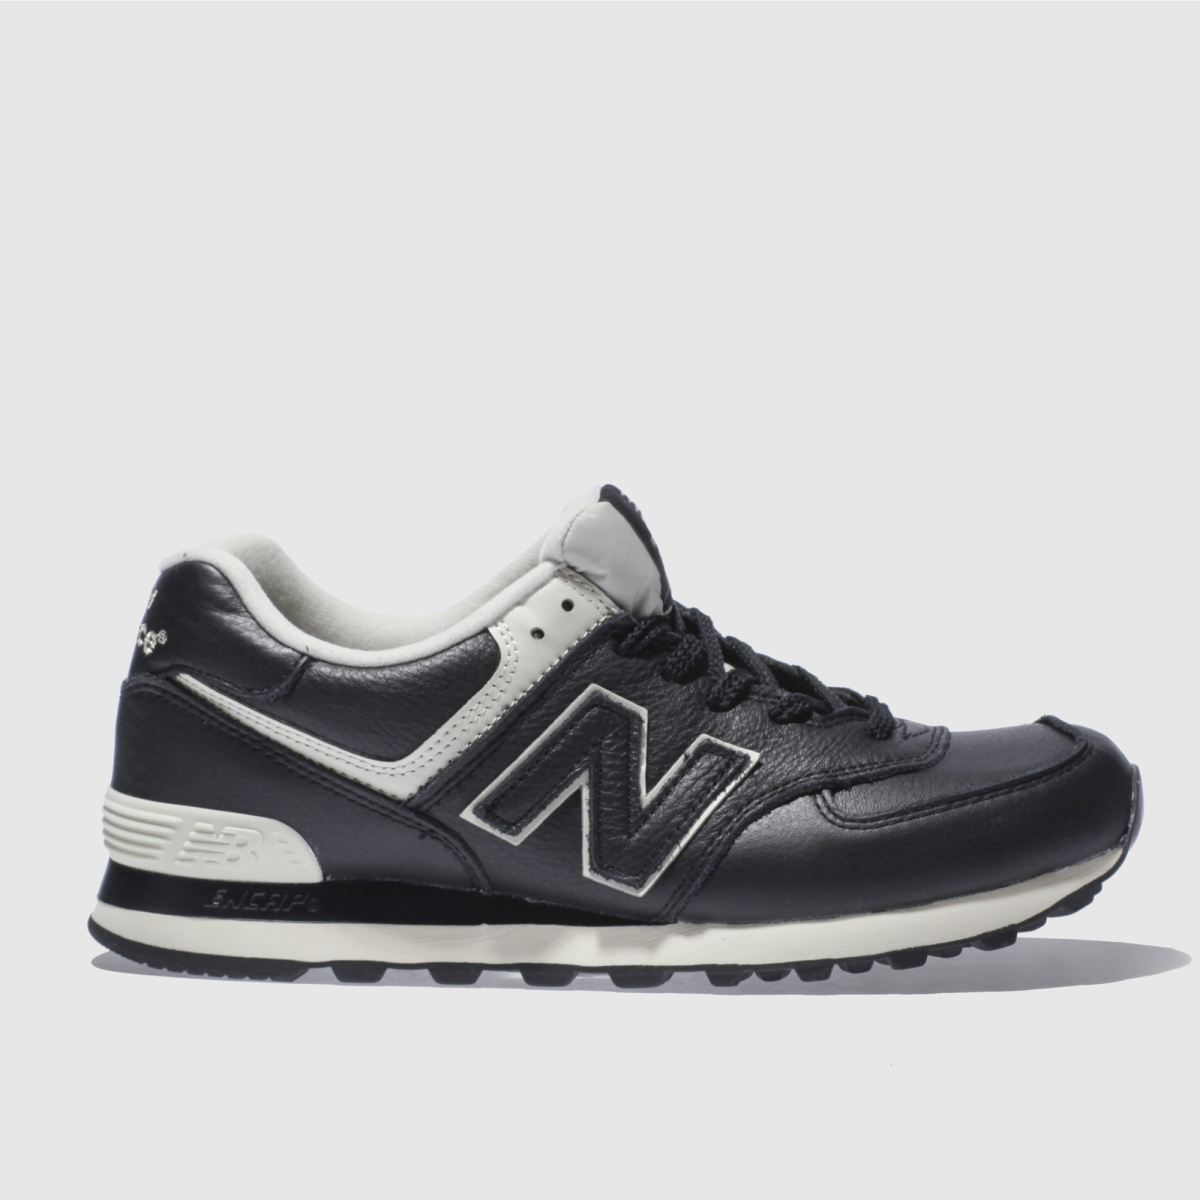 New Balance Black 574 Trainers